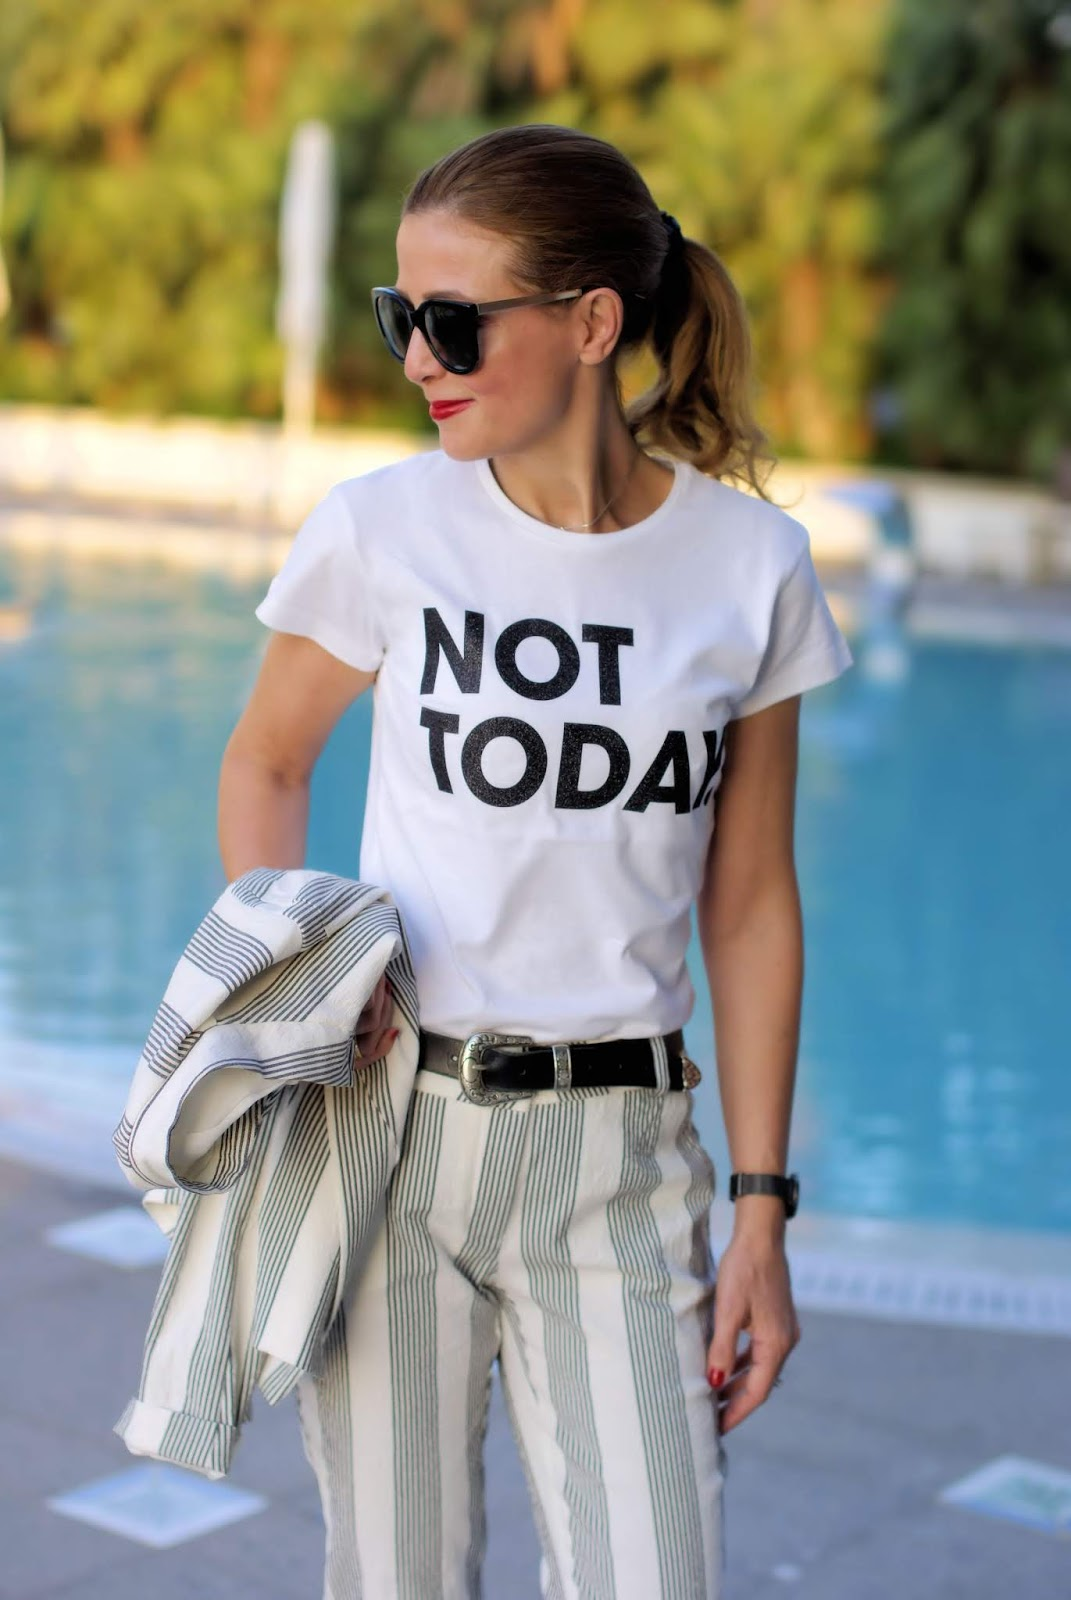 Not today: Ixos black and white striped suit on Fashion and Cookies fashion blog, fashion blogger style